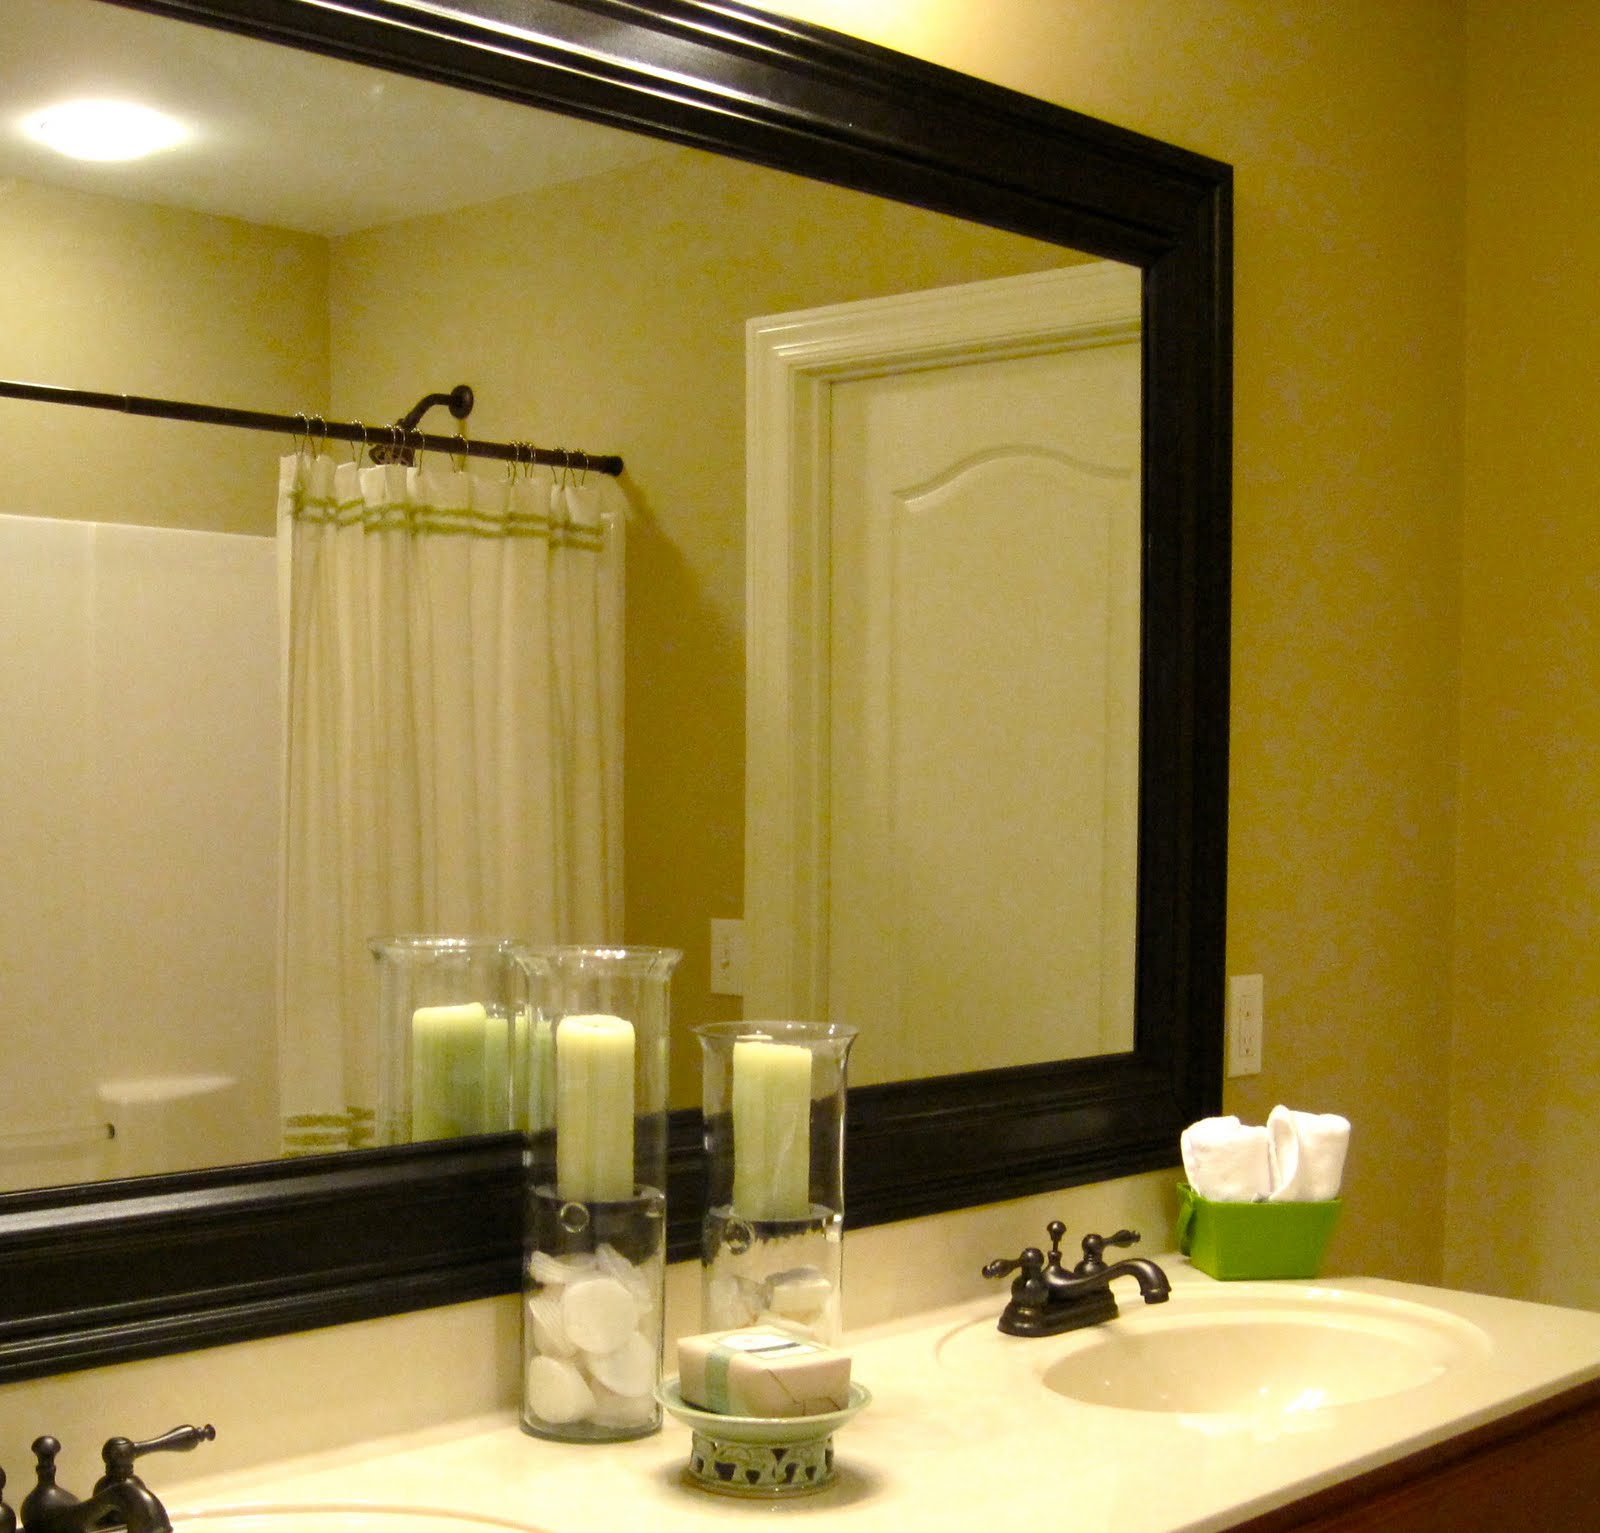 framed nicer of will wall mirror x your large bathroom make looks size interesting looking vanitybathroom for mirrors that